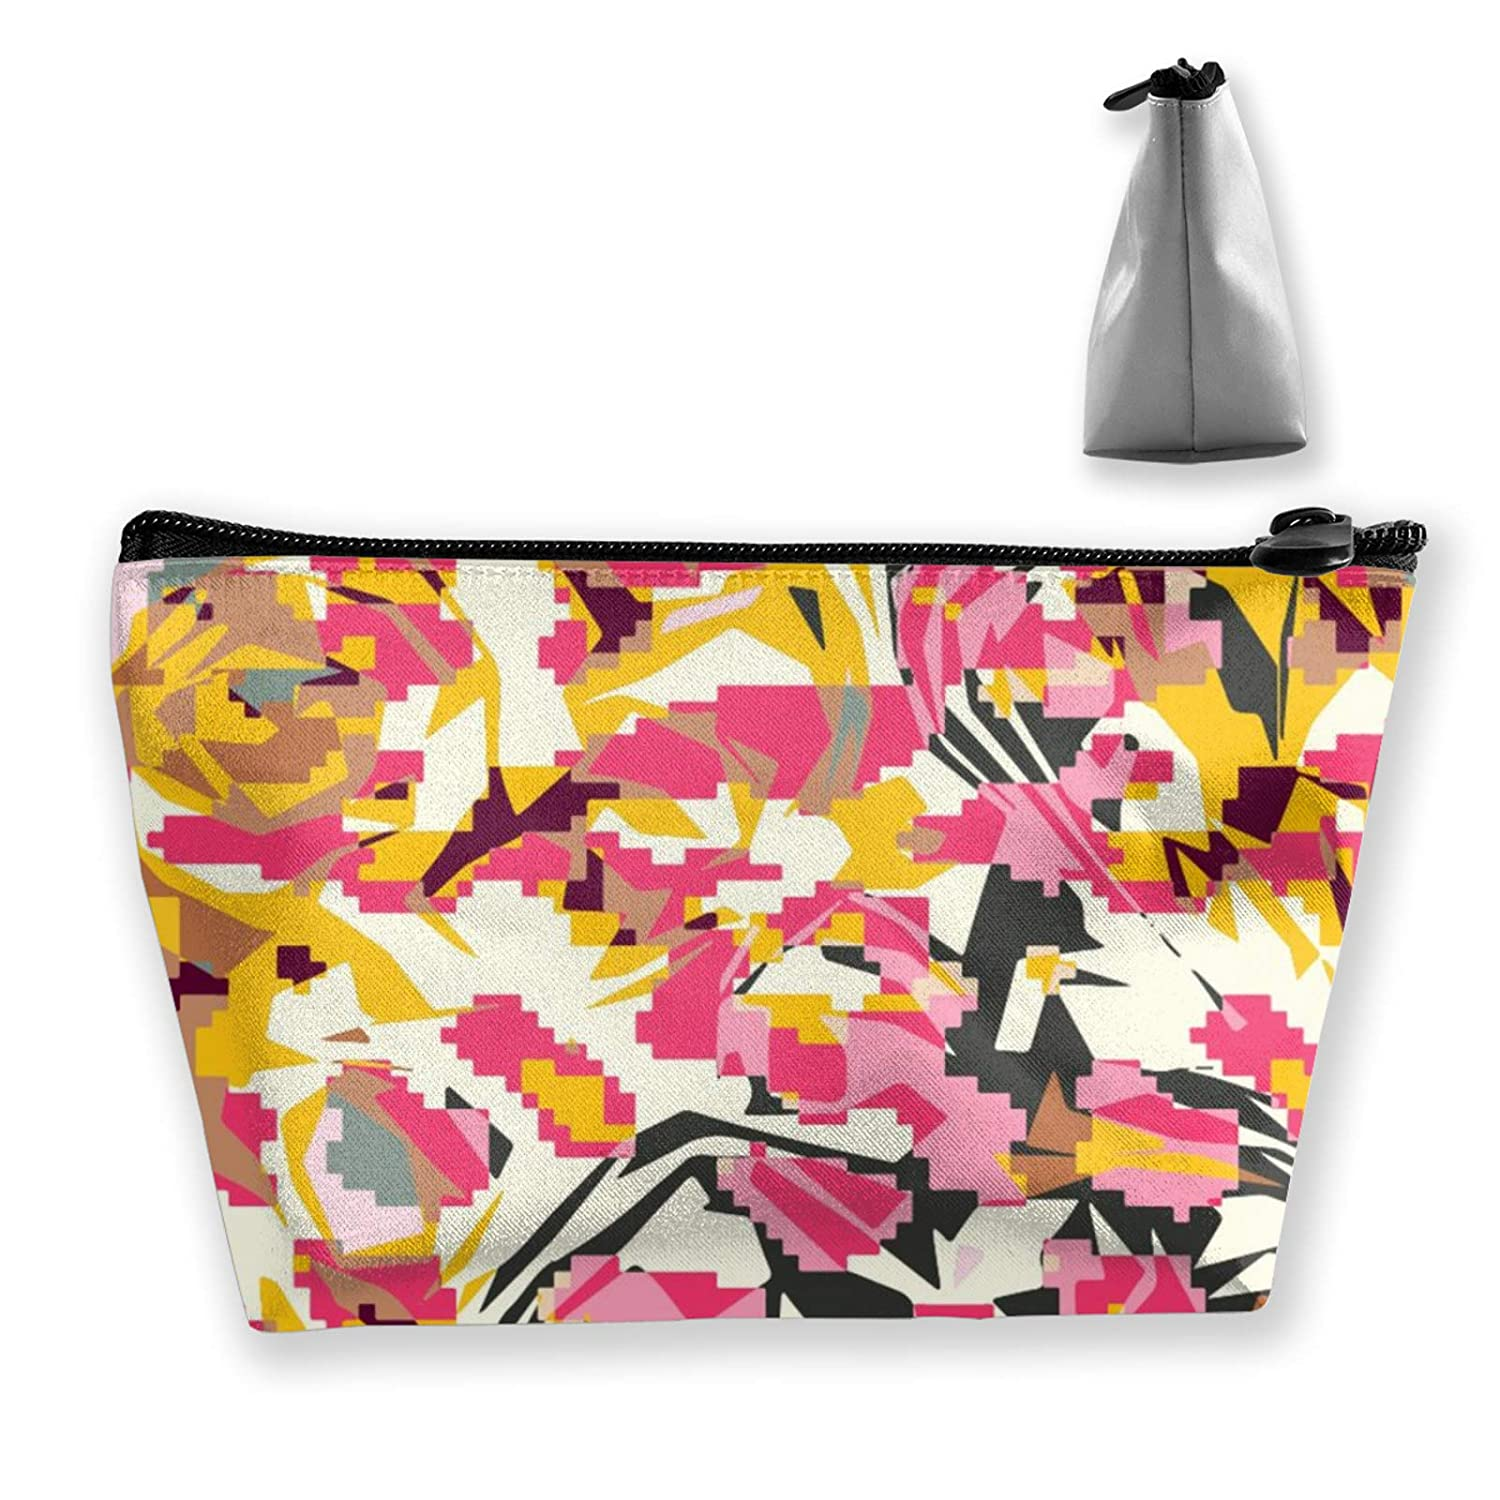 Women Girls Abstract Art Painting Colorful Flower Floral Make Up Bag Pouch For Makeup Brushes Jewelry Travel Large Capacity Travel Makeup Train Case Multi-Purpose Clutch Bag Luggage Pouch